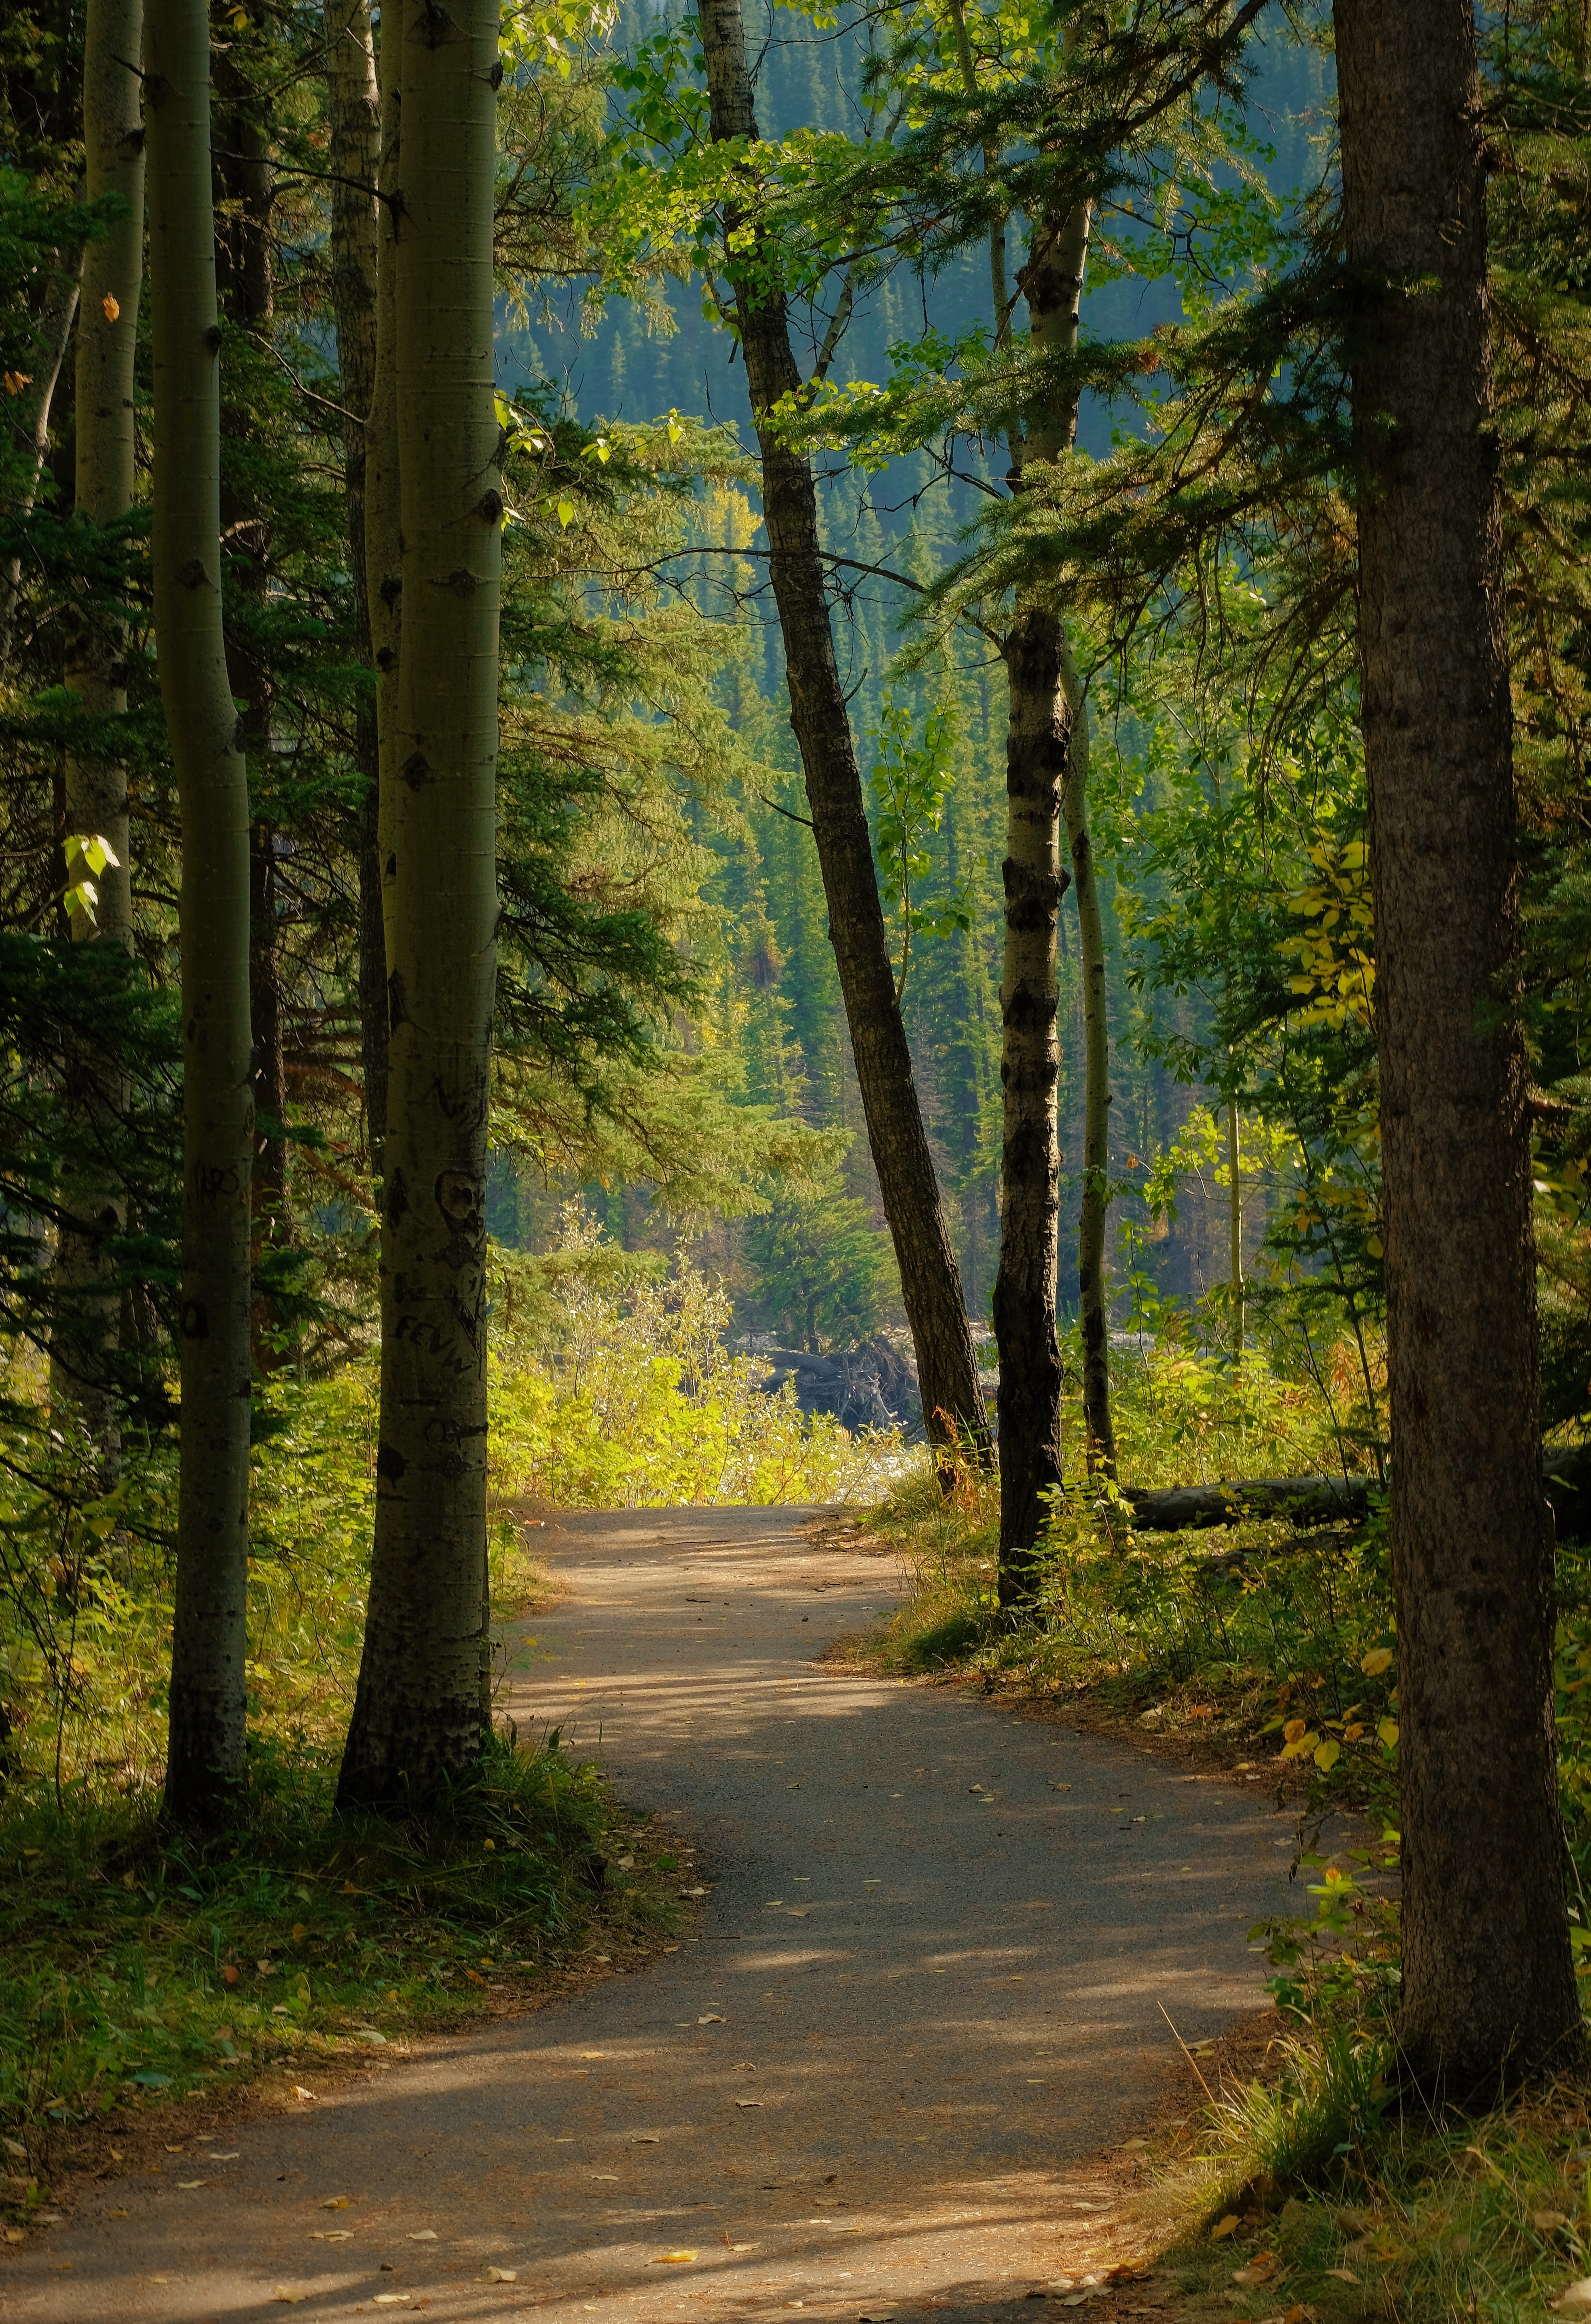 129170 download wallpaper Forest, Nature, Road, Path screensavers and pictures for free